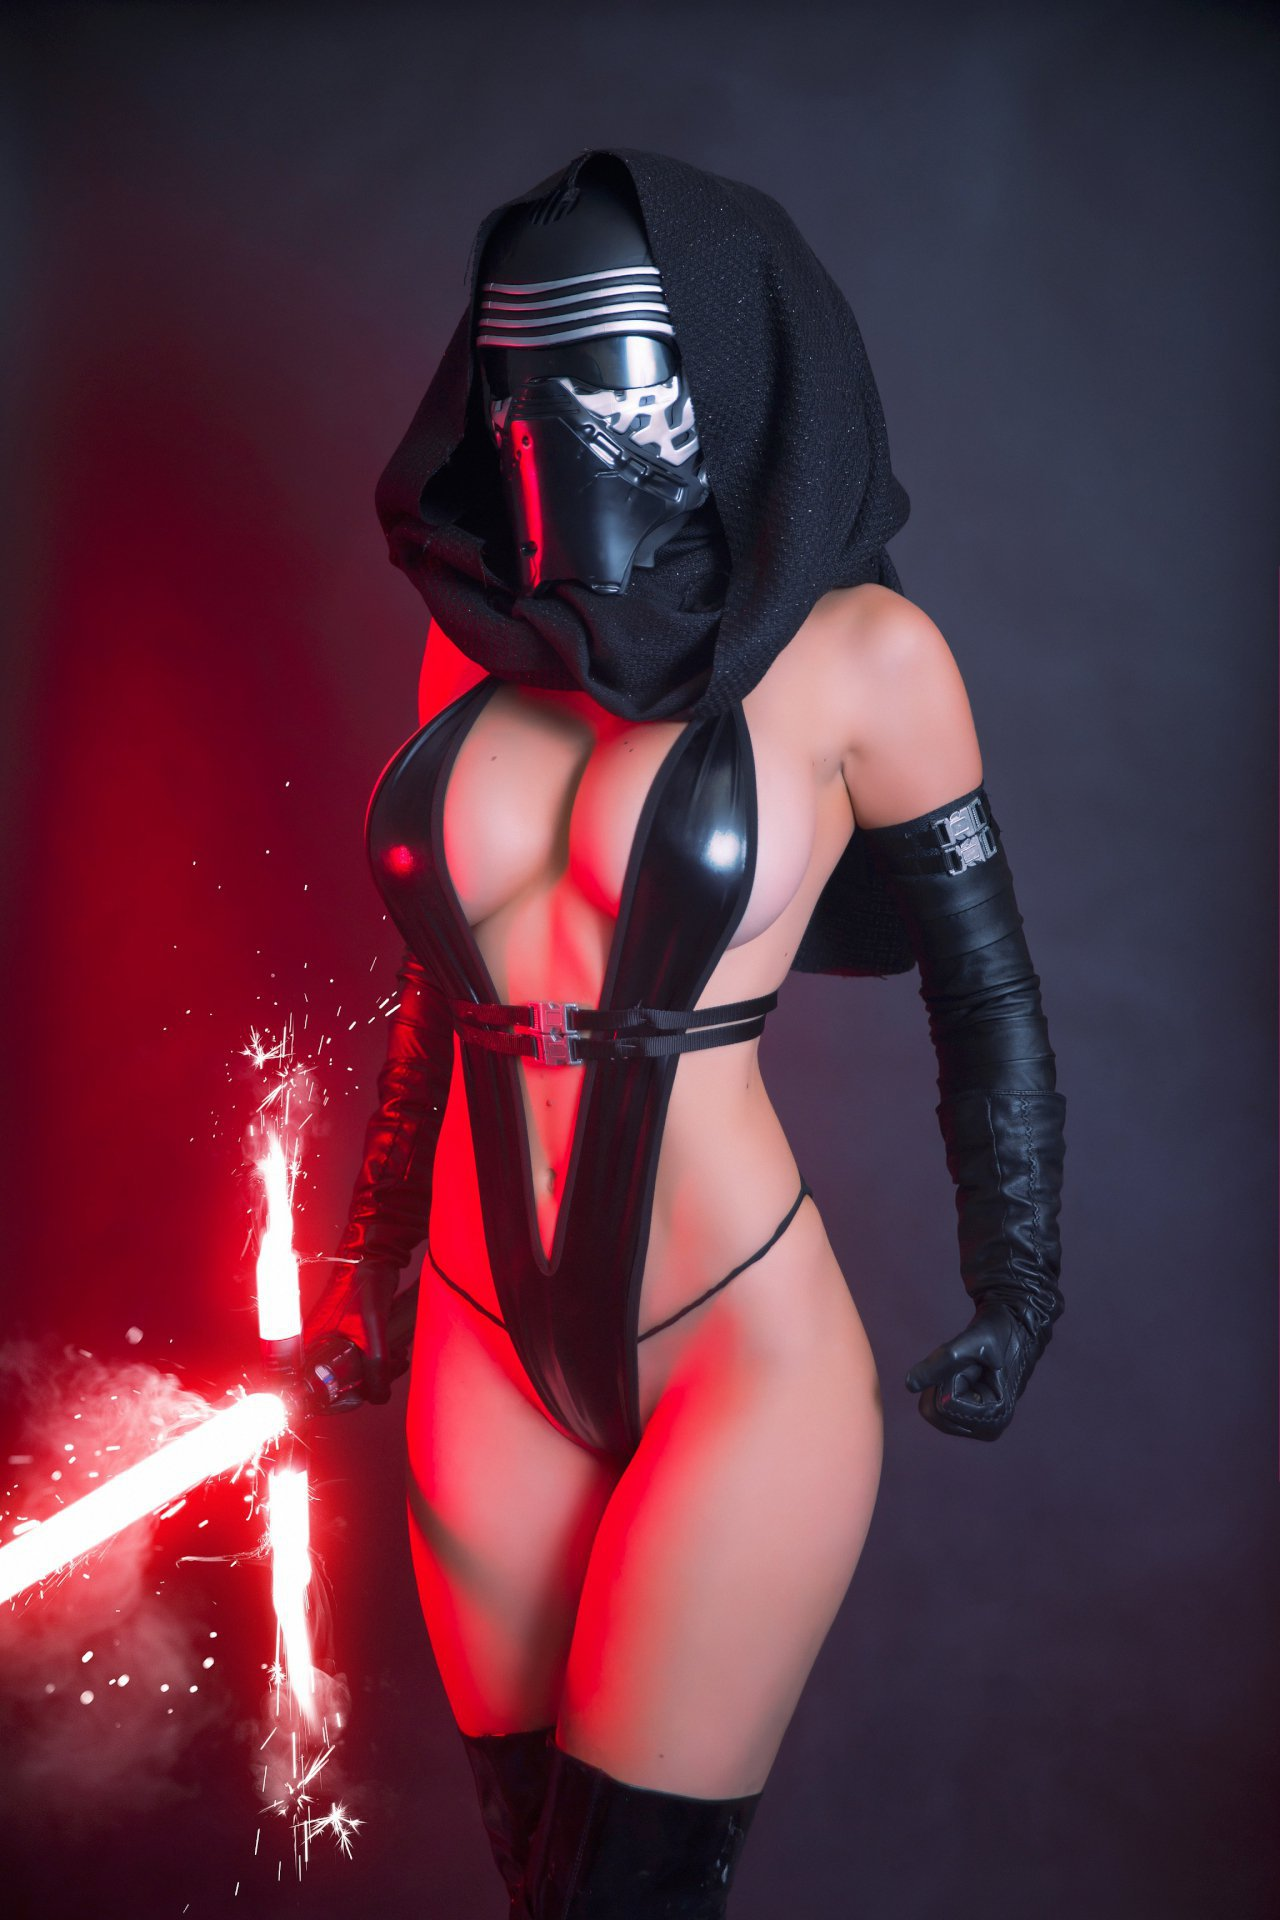 Is Jessica Nigri the sexiest Jedi Warrior ever